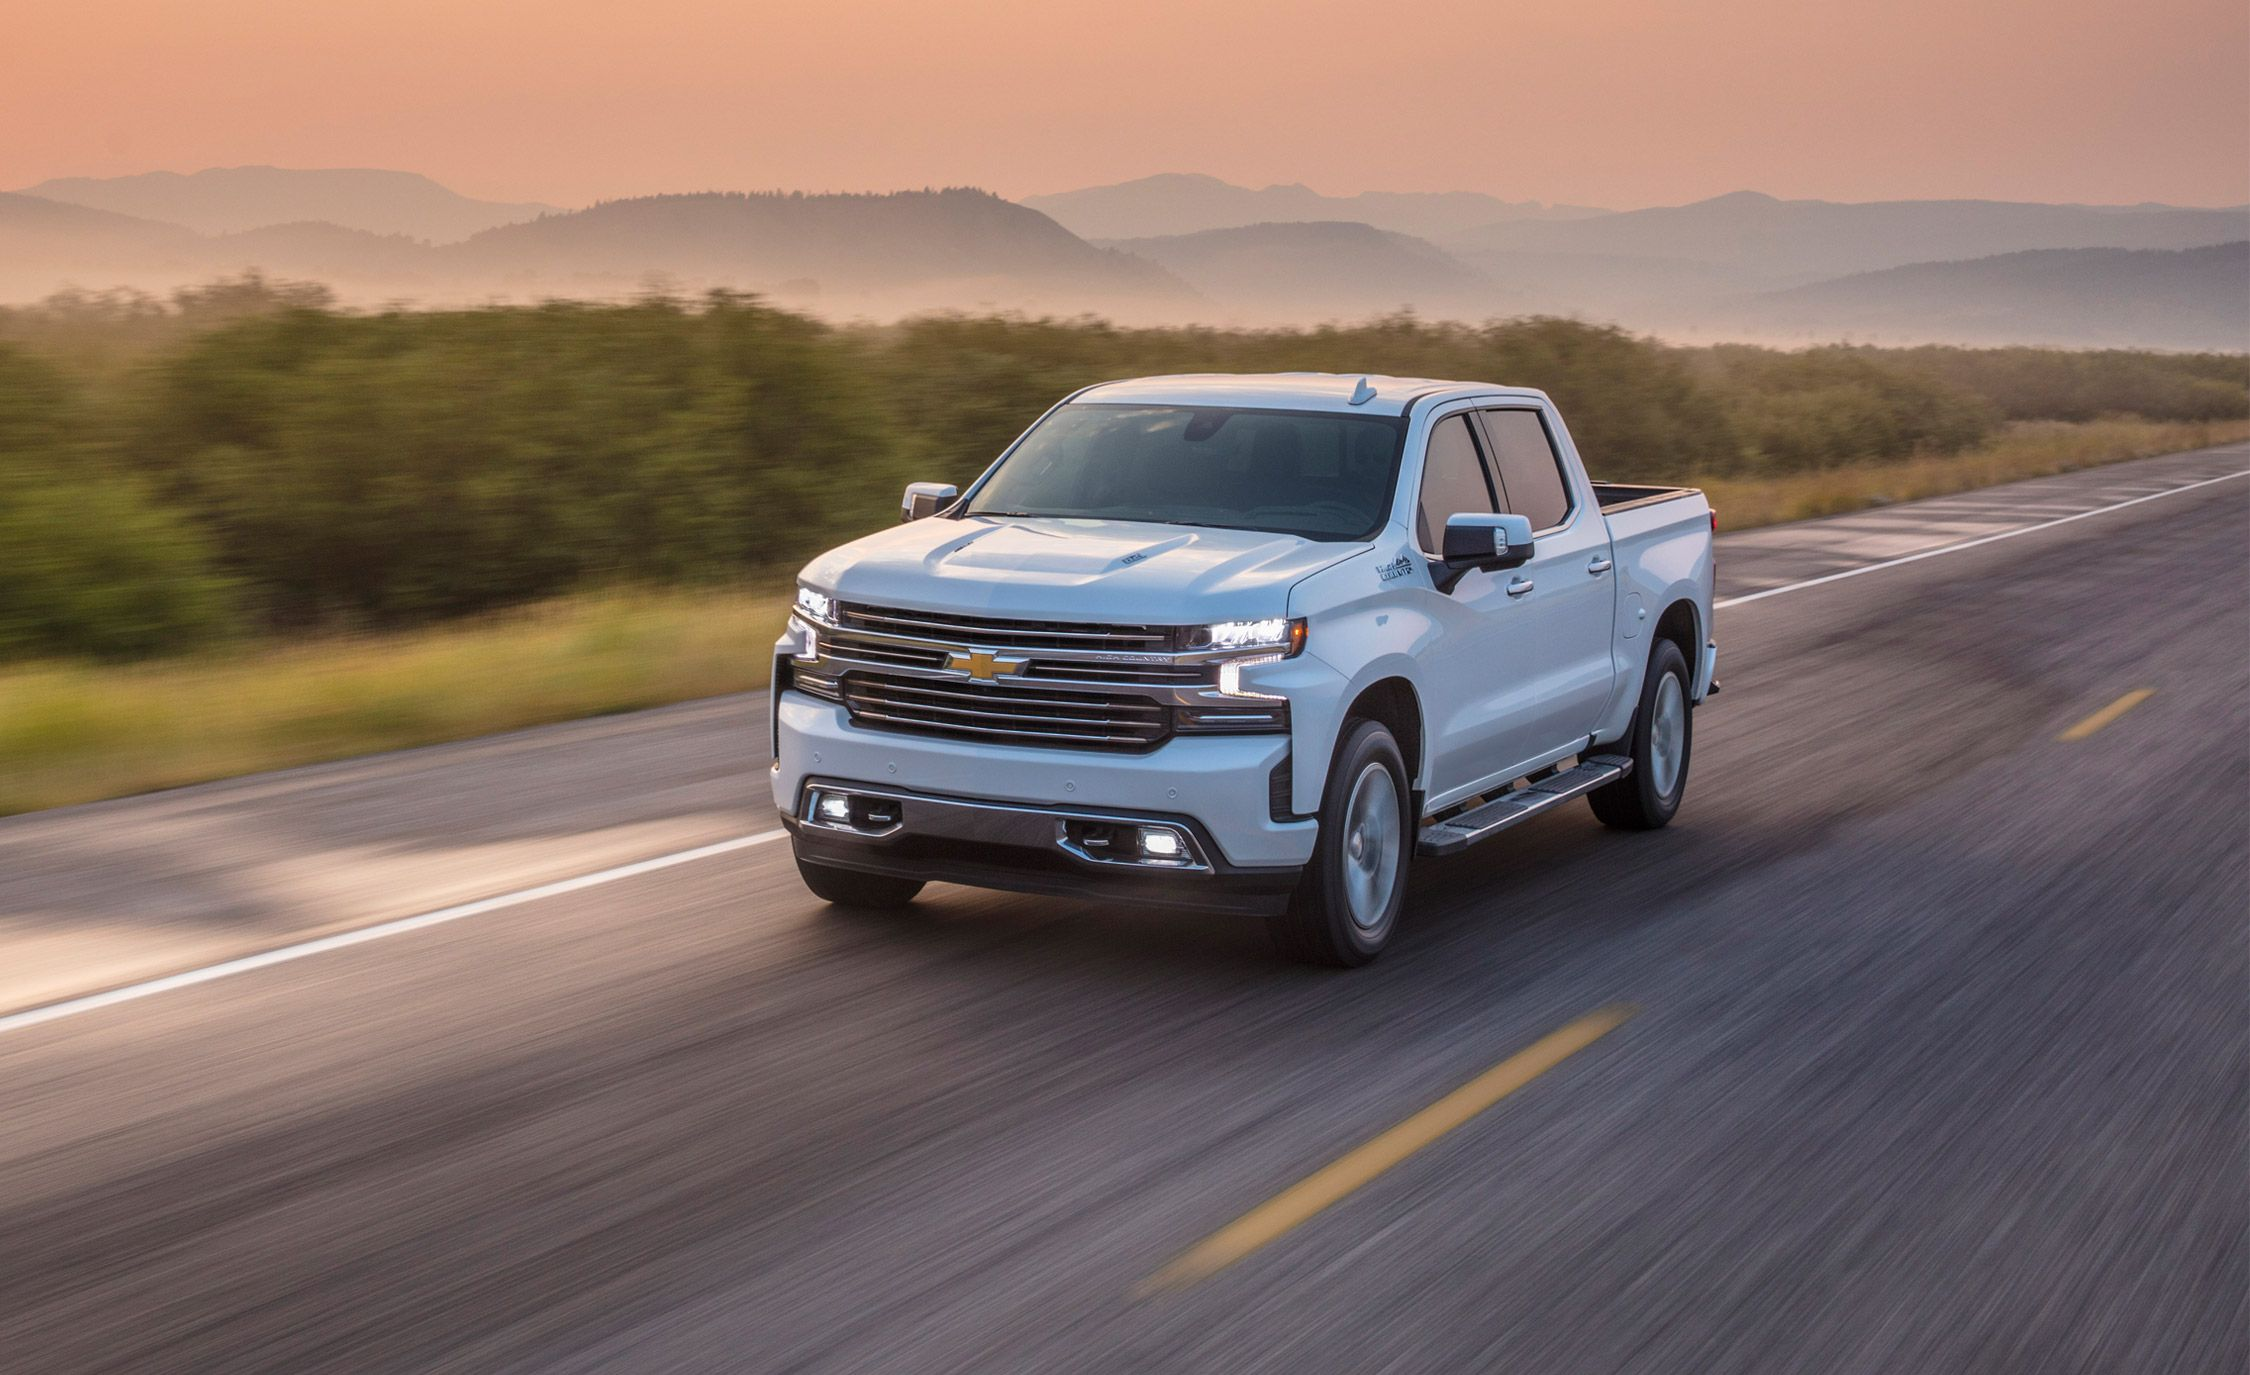 Rst Silverado For Sale >> 2019 Chevrolet Silverado 1500 Driven: Longer, Lighter, More Fuel Efficient, and Extremely Refined